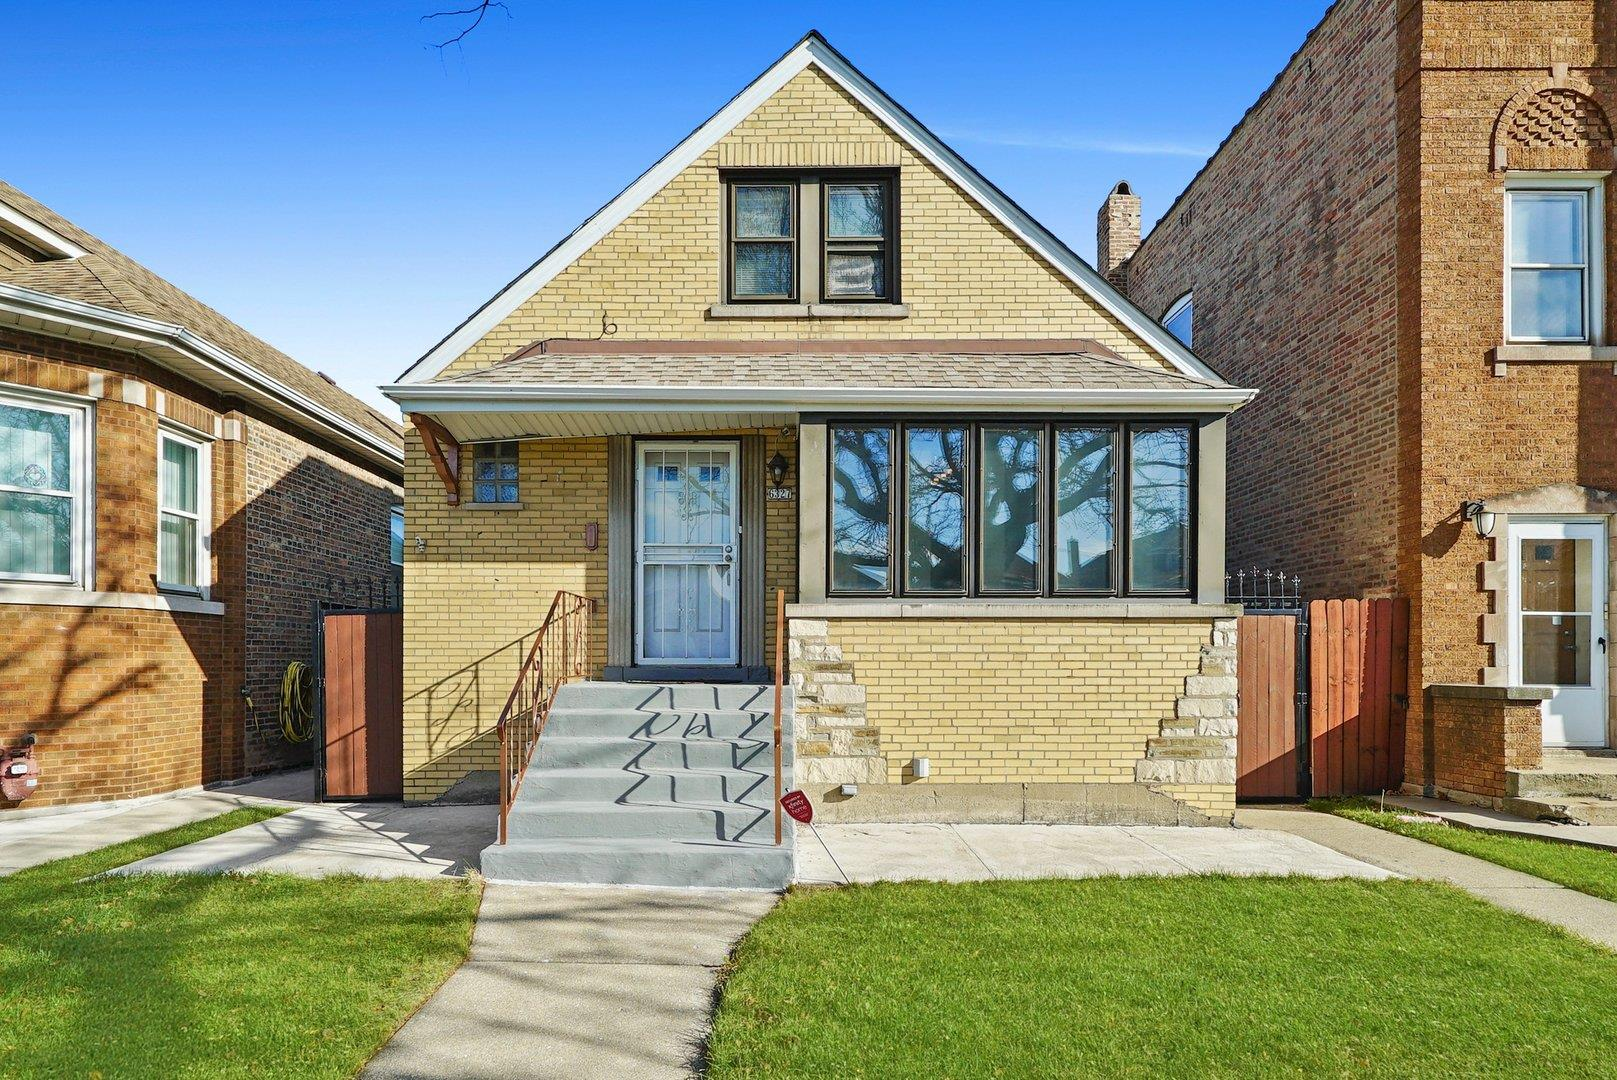 6327 S KEATING Avenue, Chicago, IL 60629 - #: 10935974